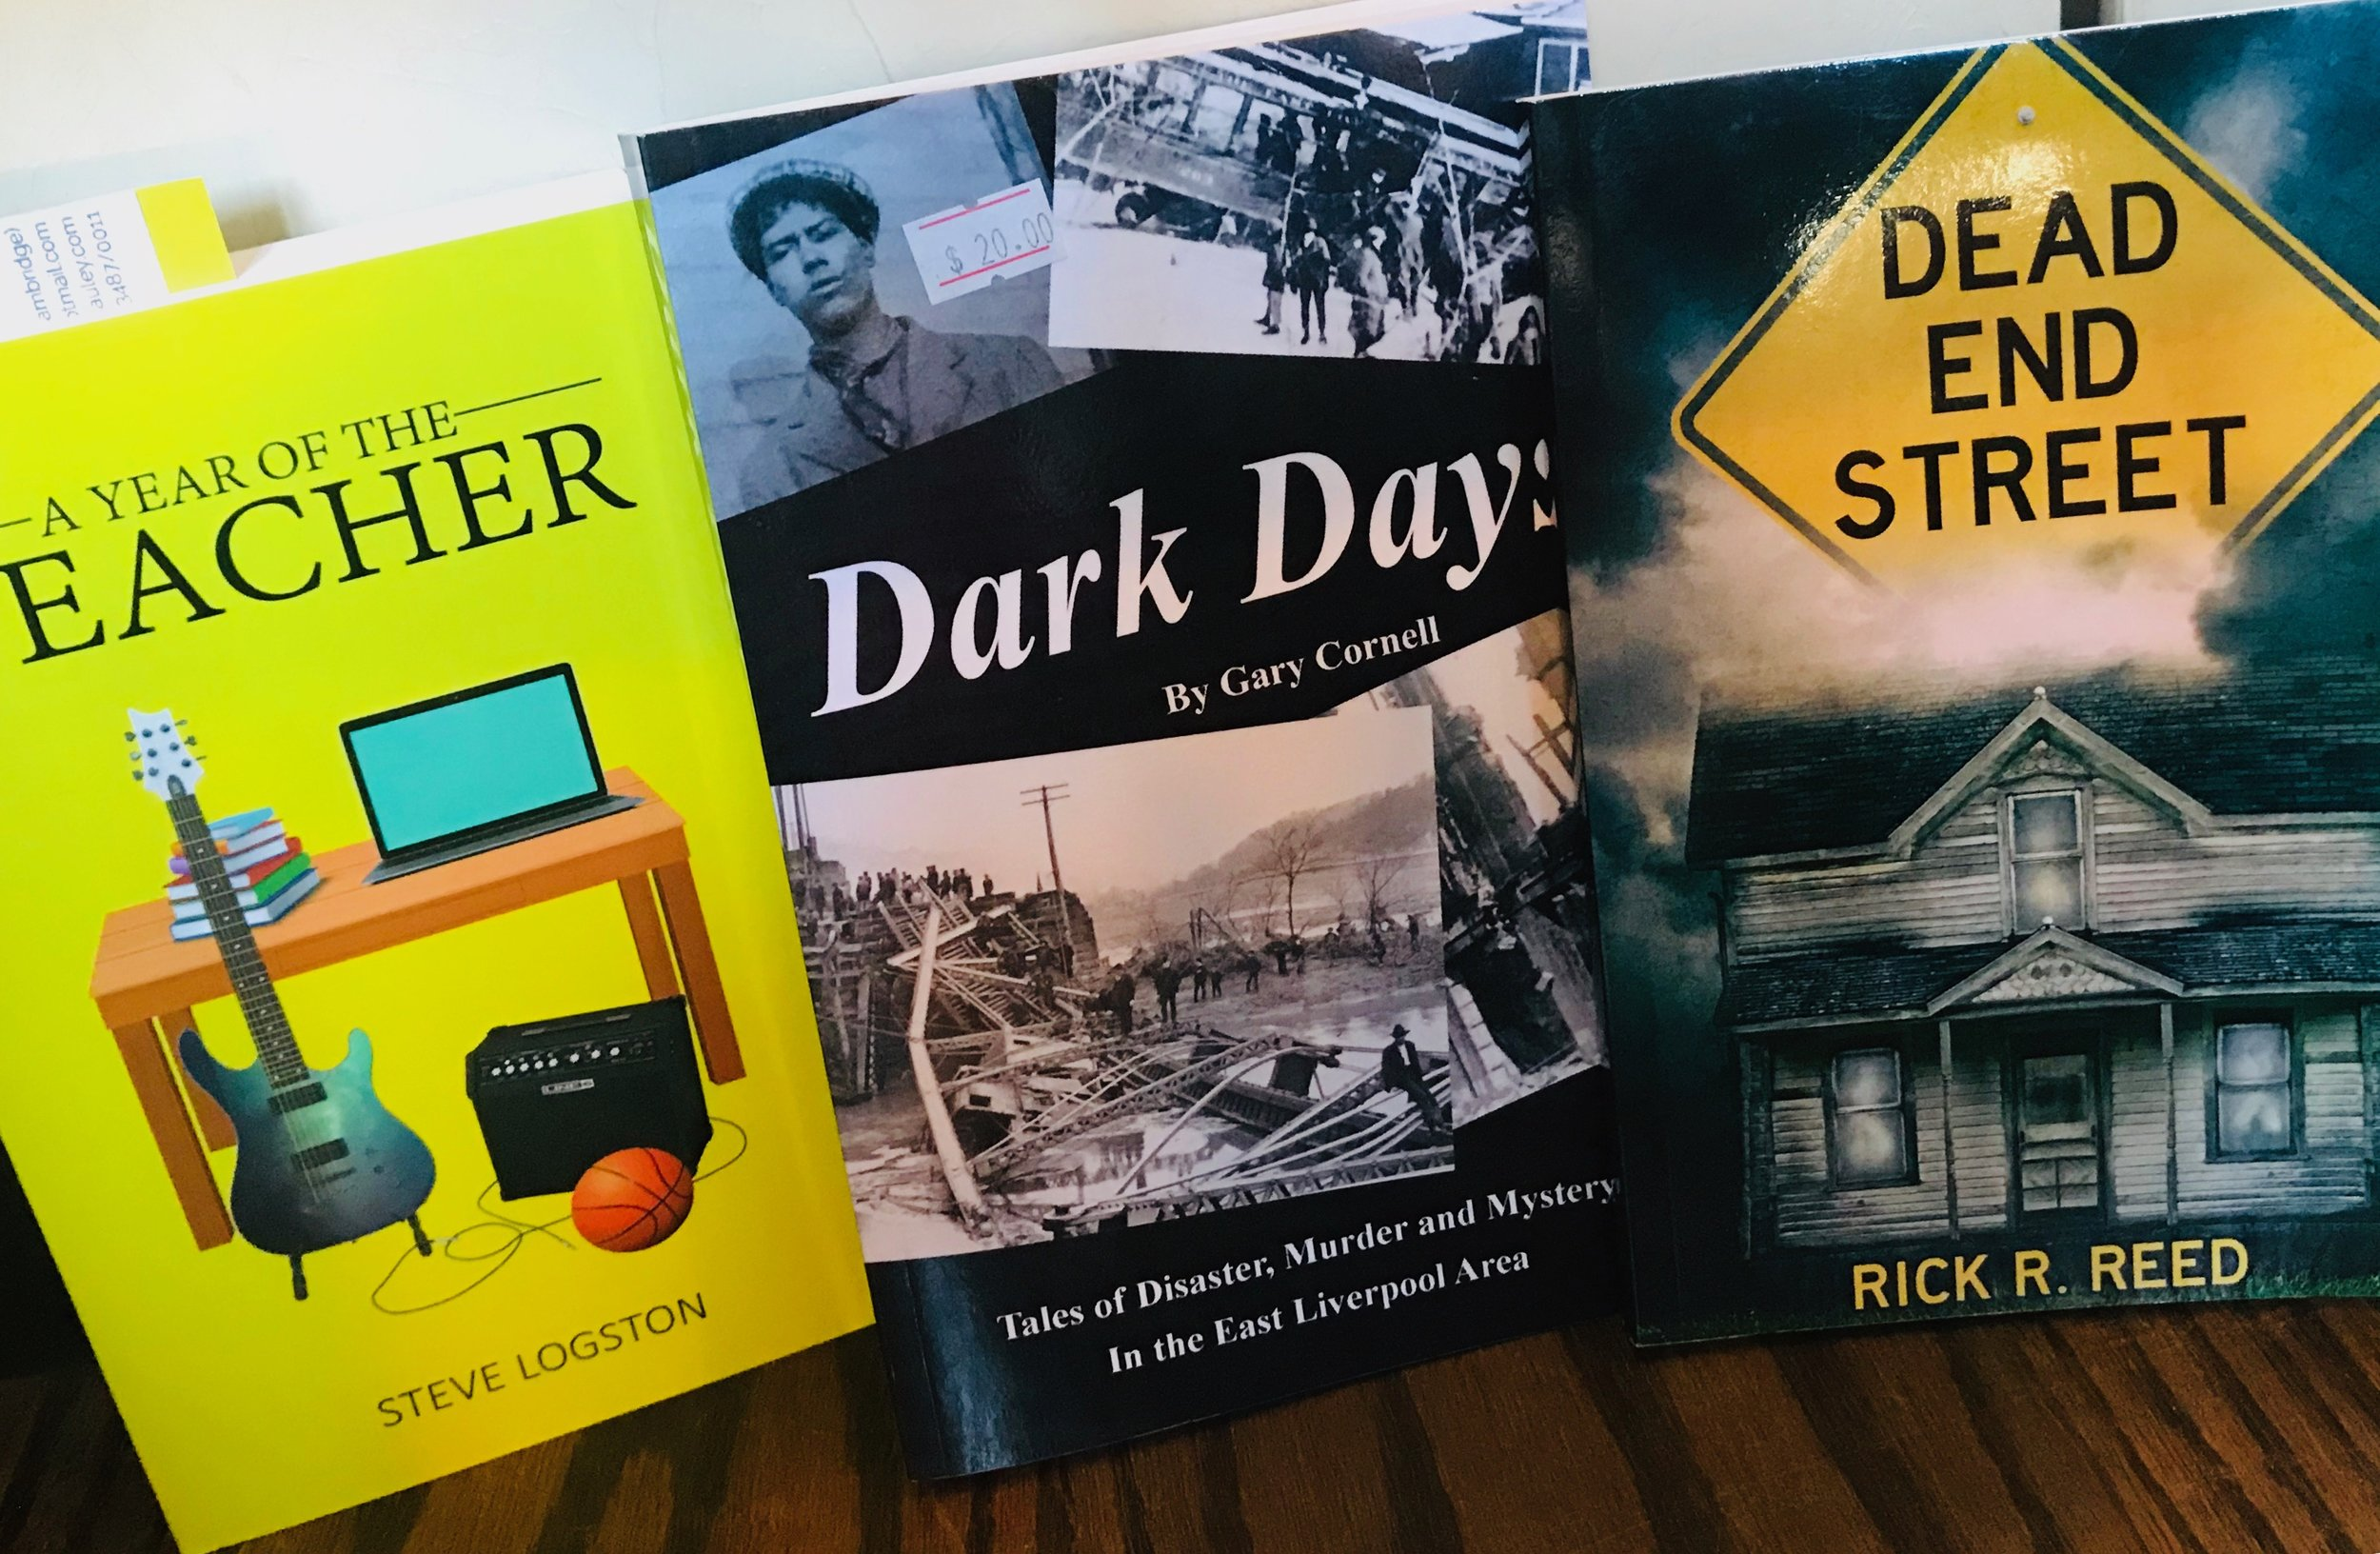 Books by local authors